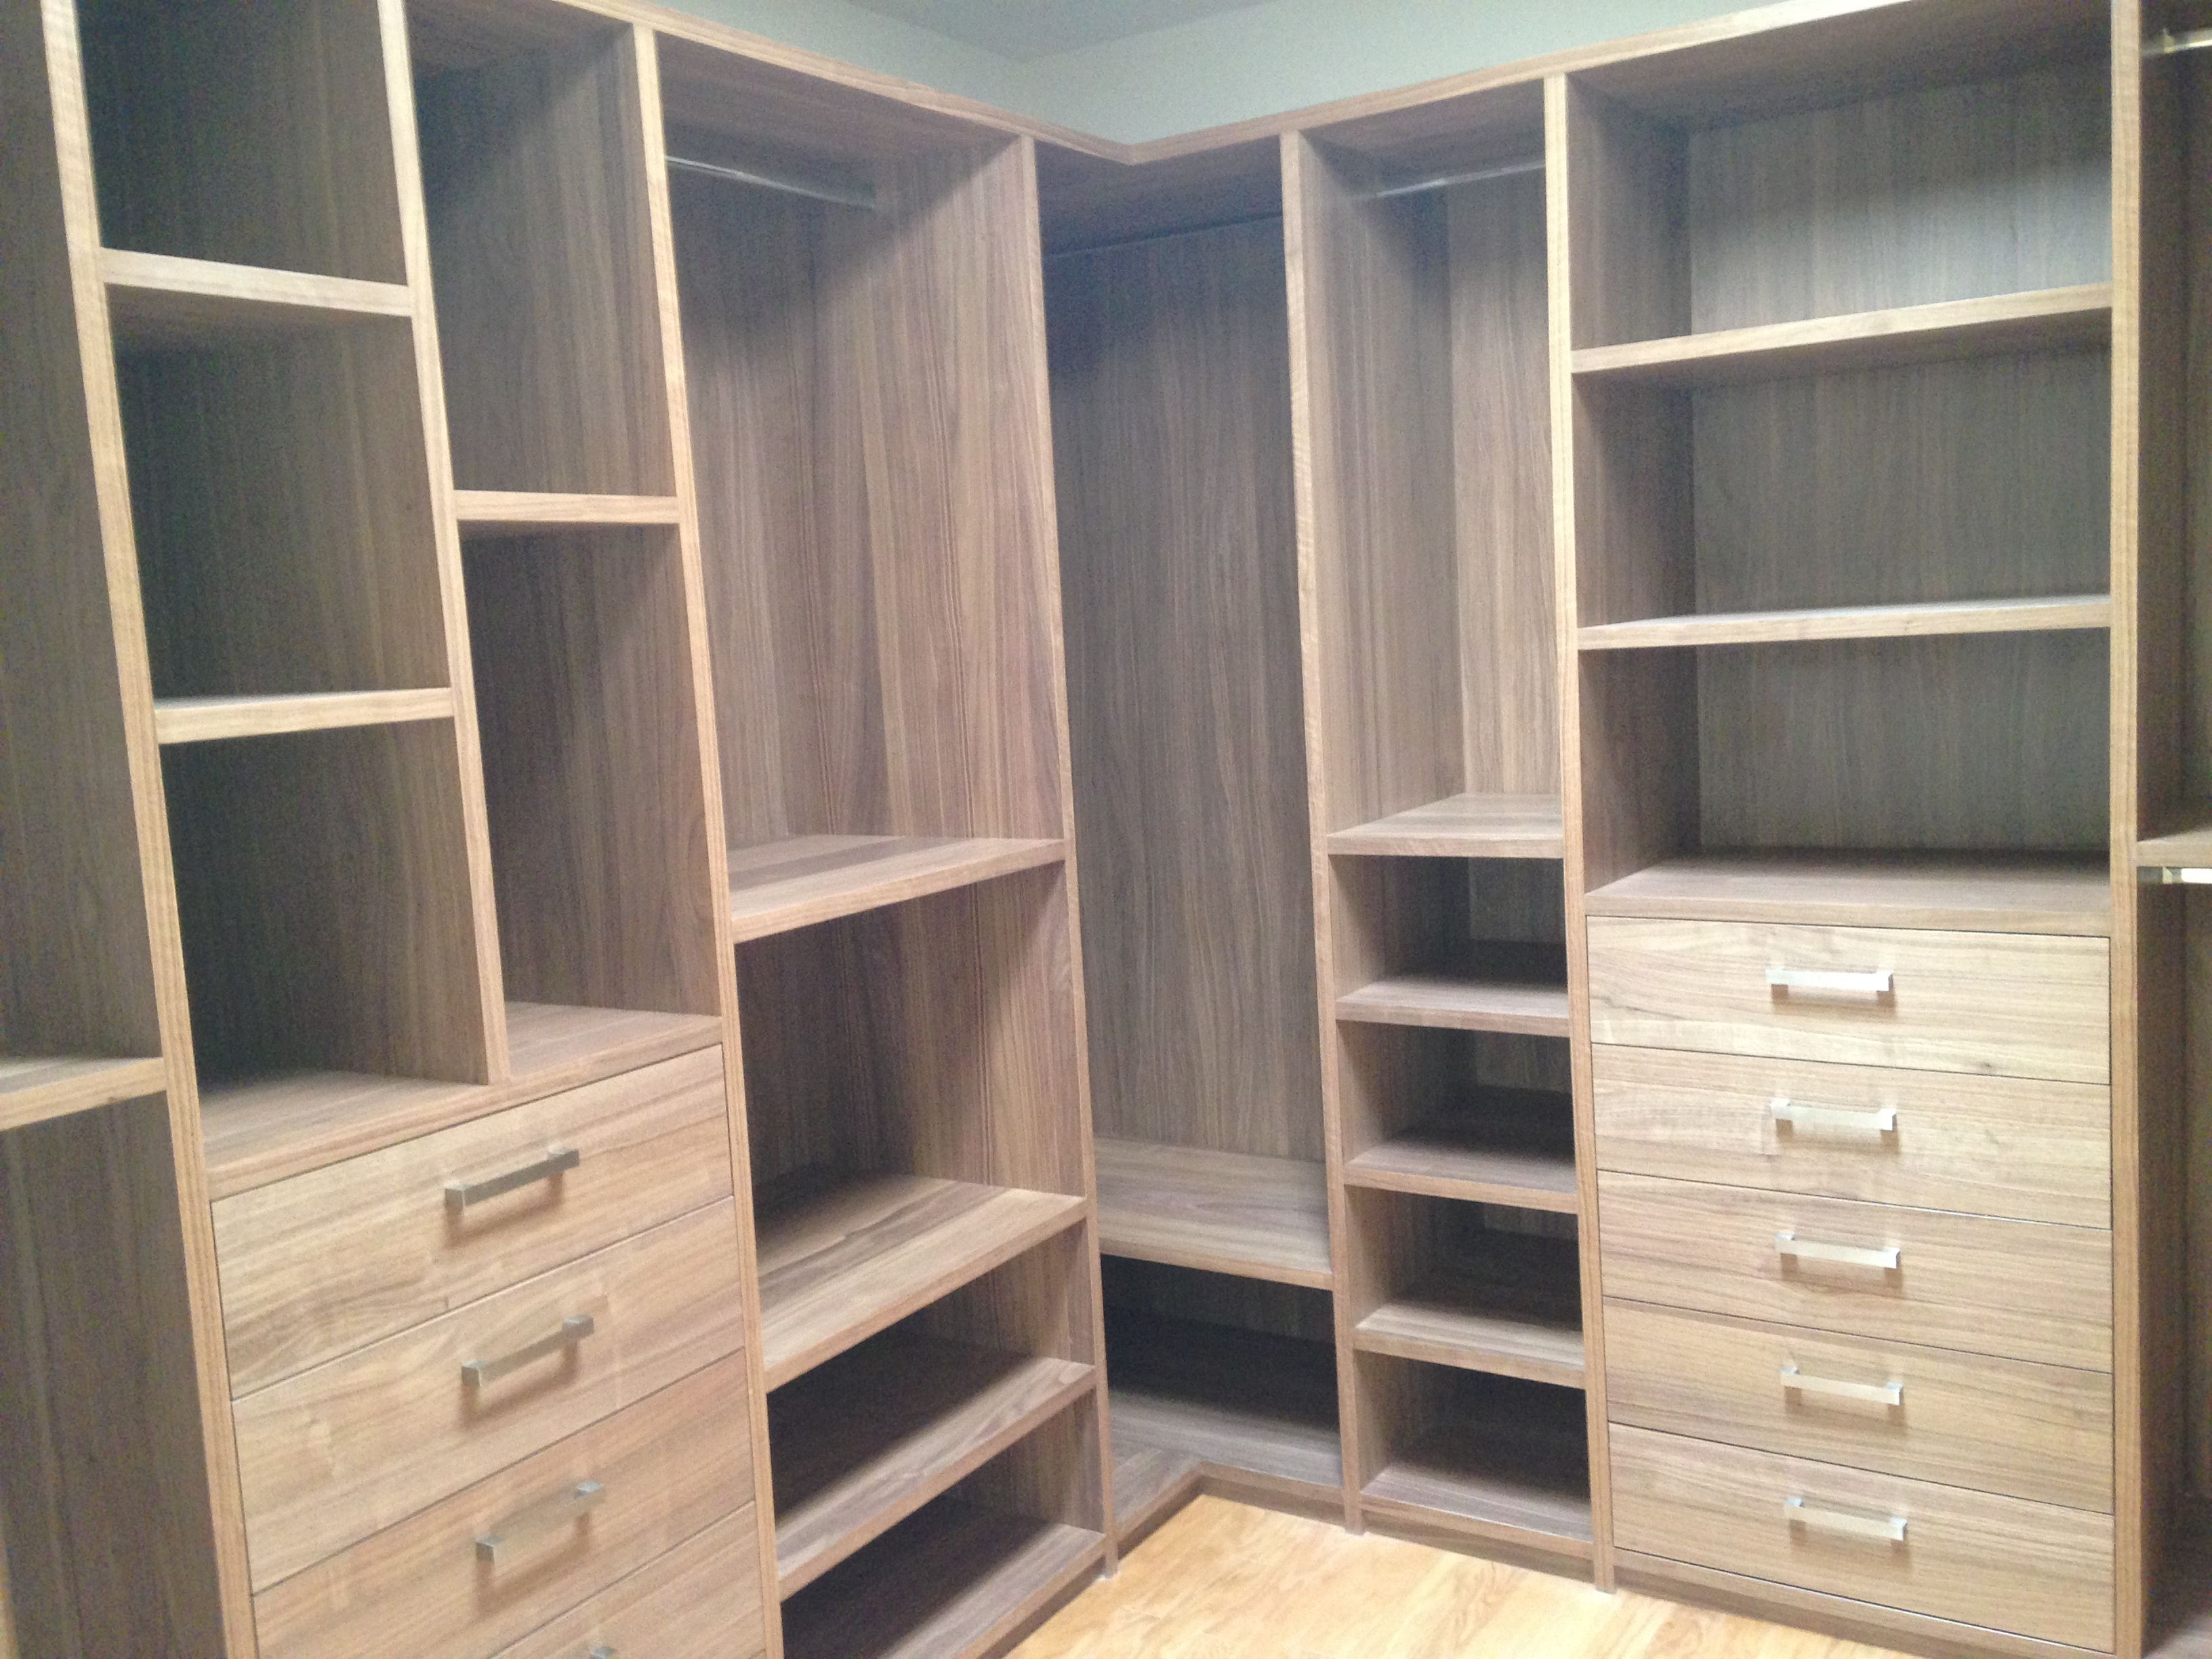 Walk In Vestidor Project Closets Pinterest Vestidor Puertas